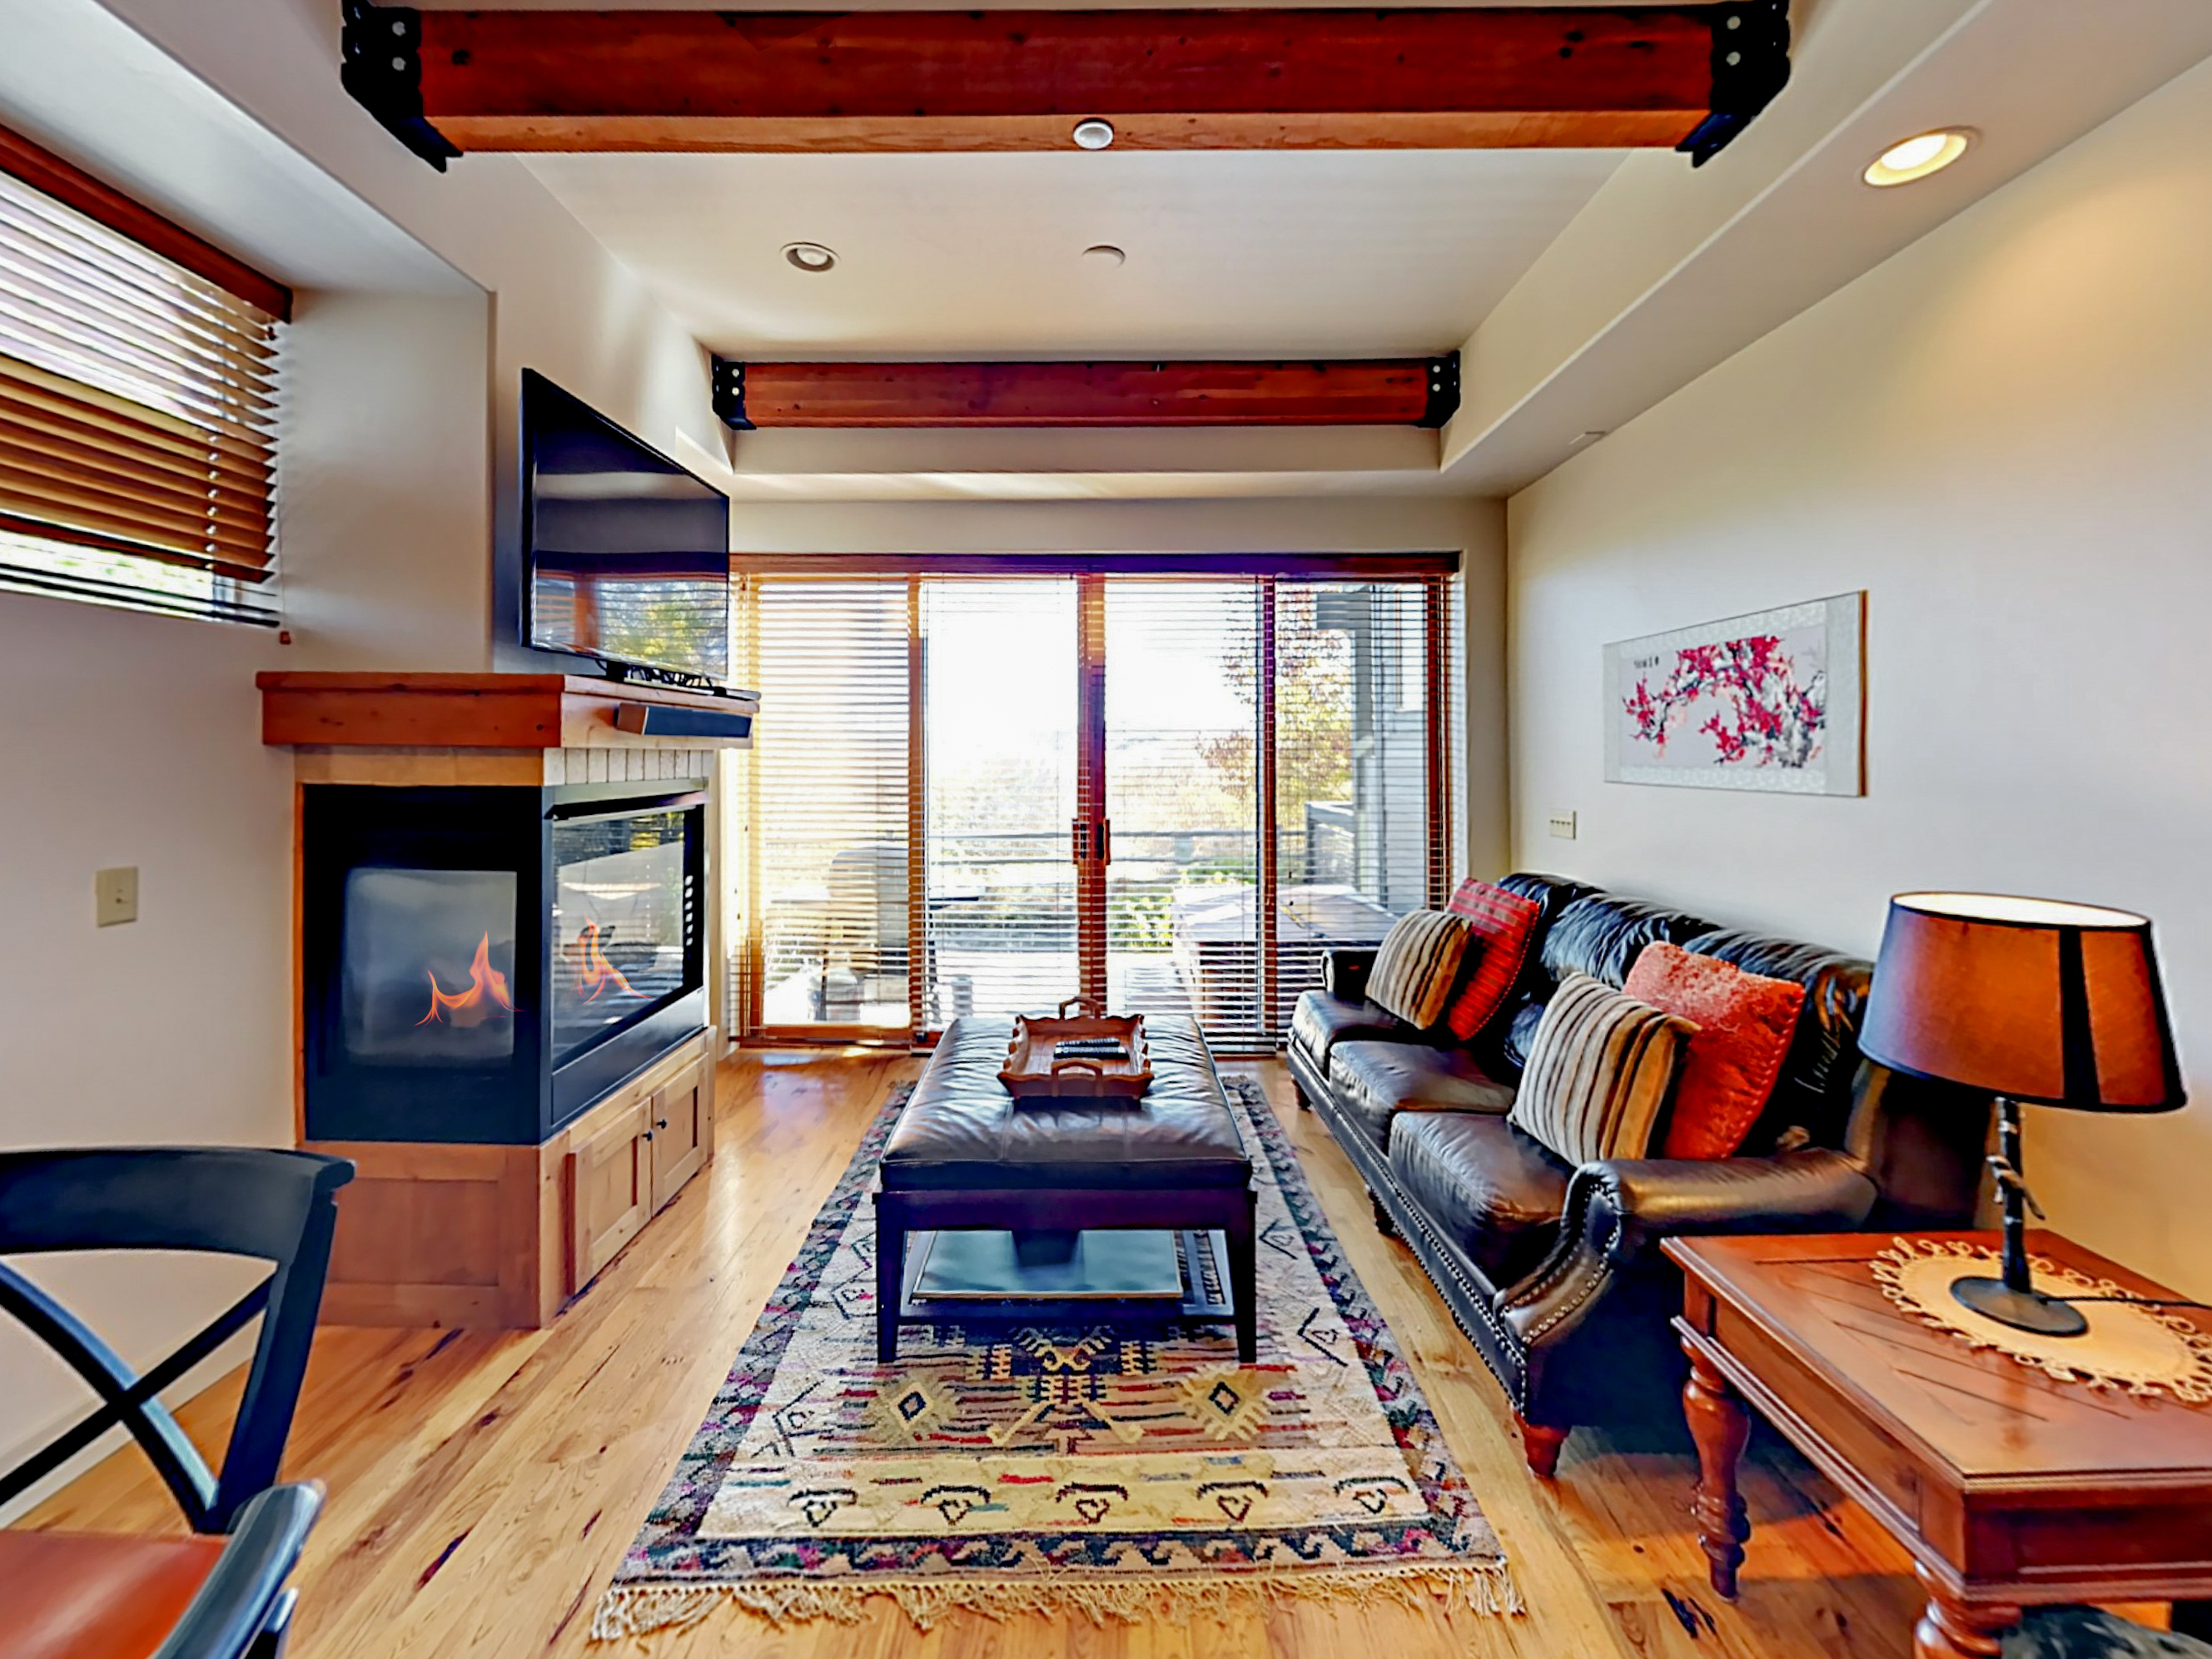 Park City UT Vacation Rental High ceilings and